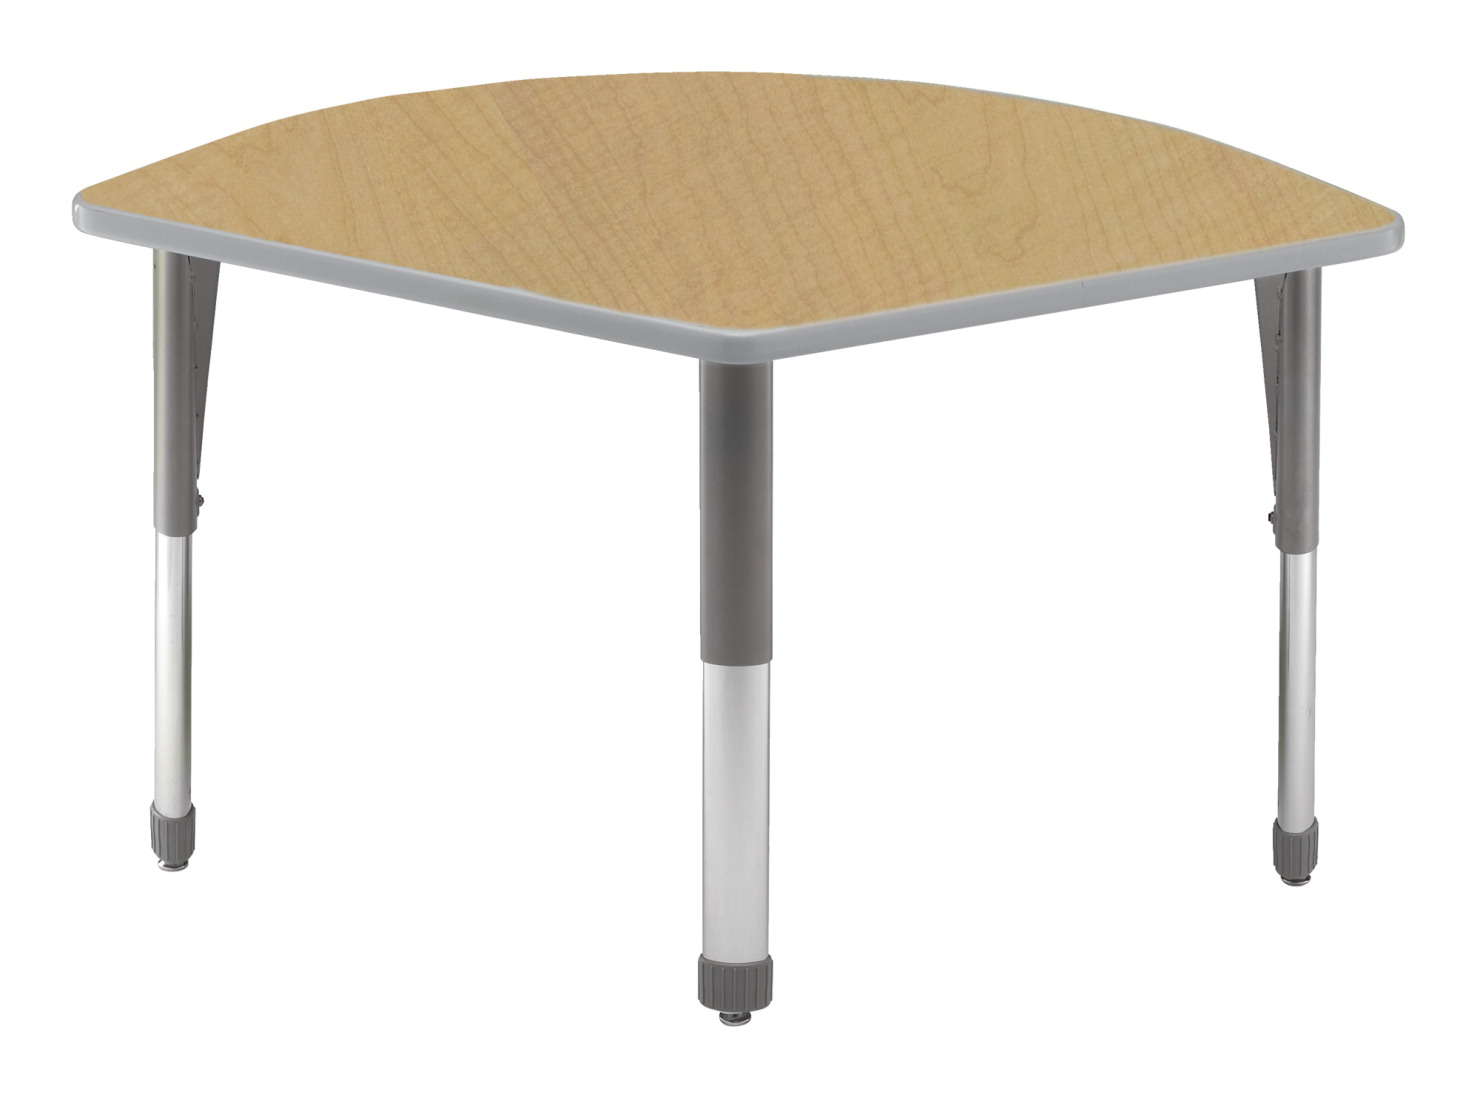 34 Inch Table Ls Smith System Interchange 3 2 1 Adjustable Height